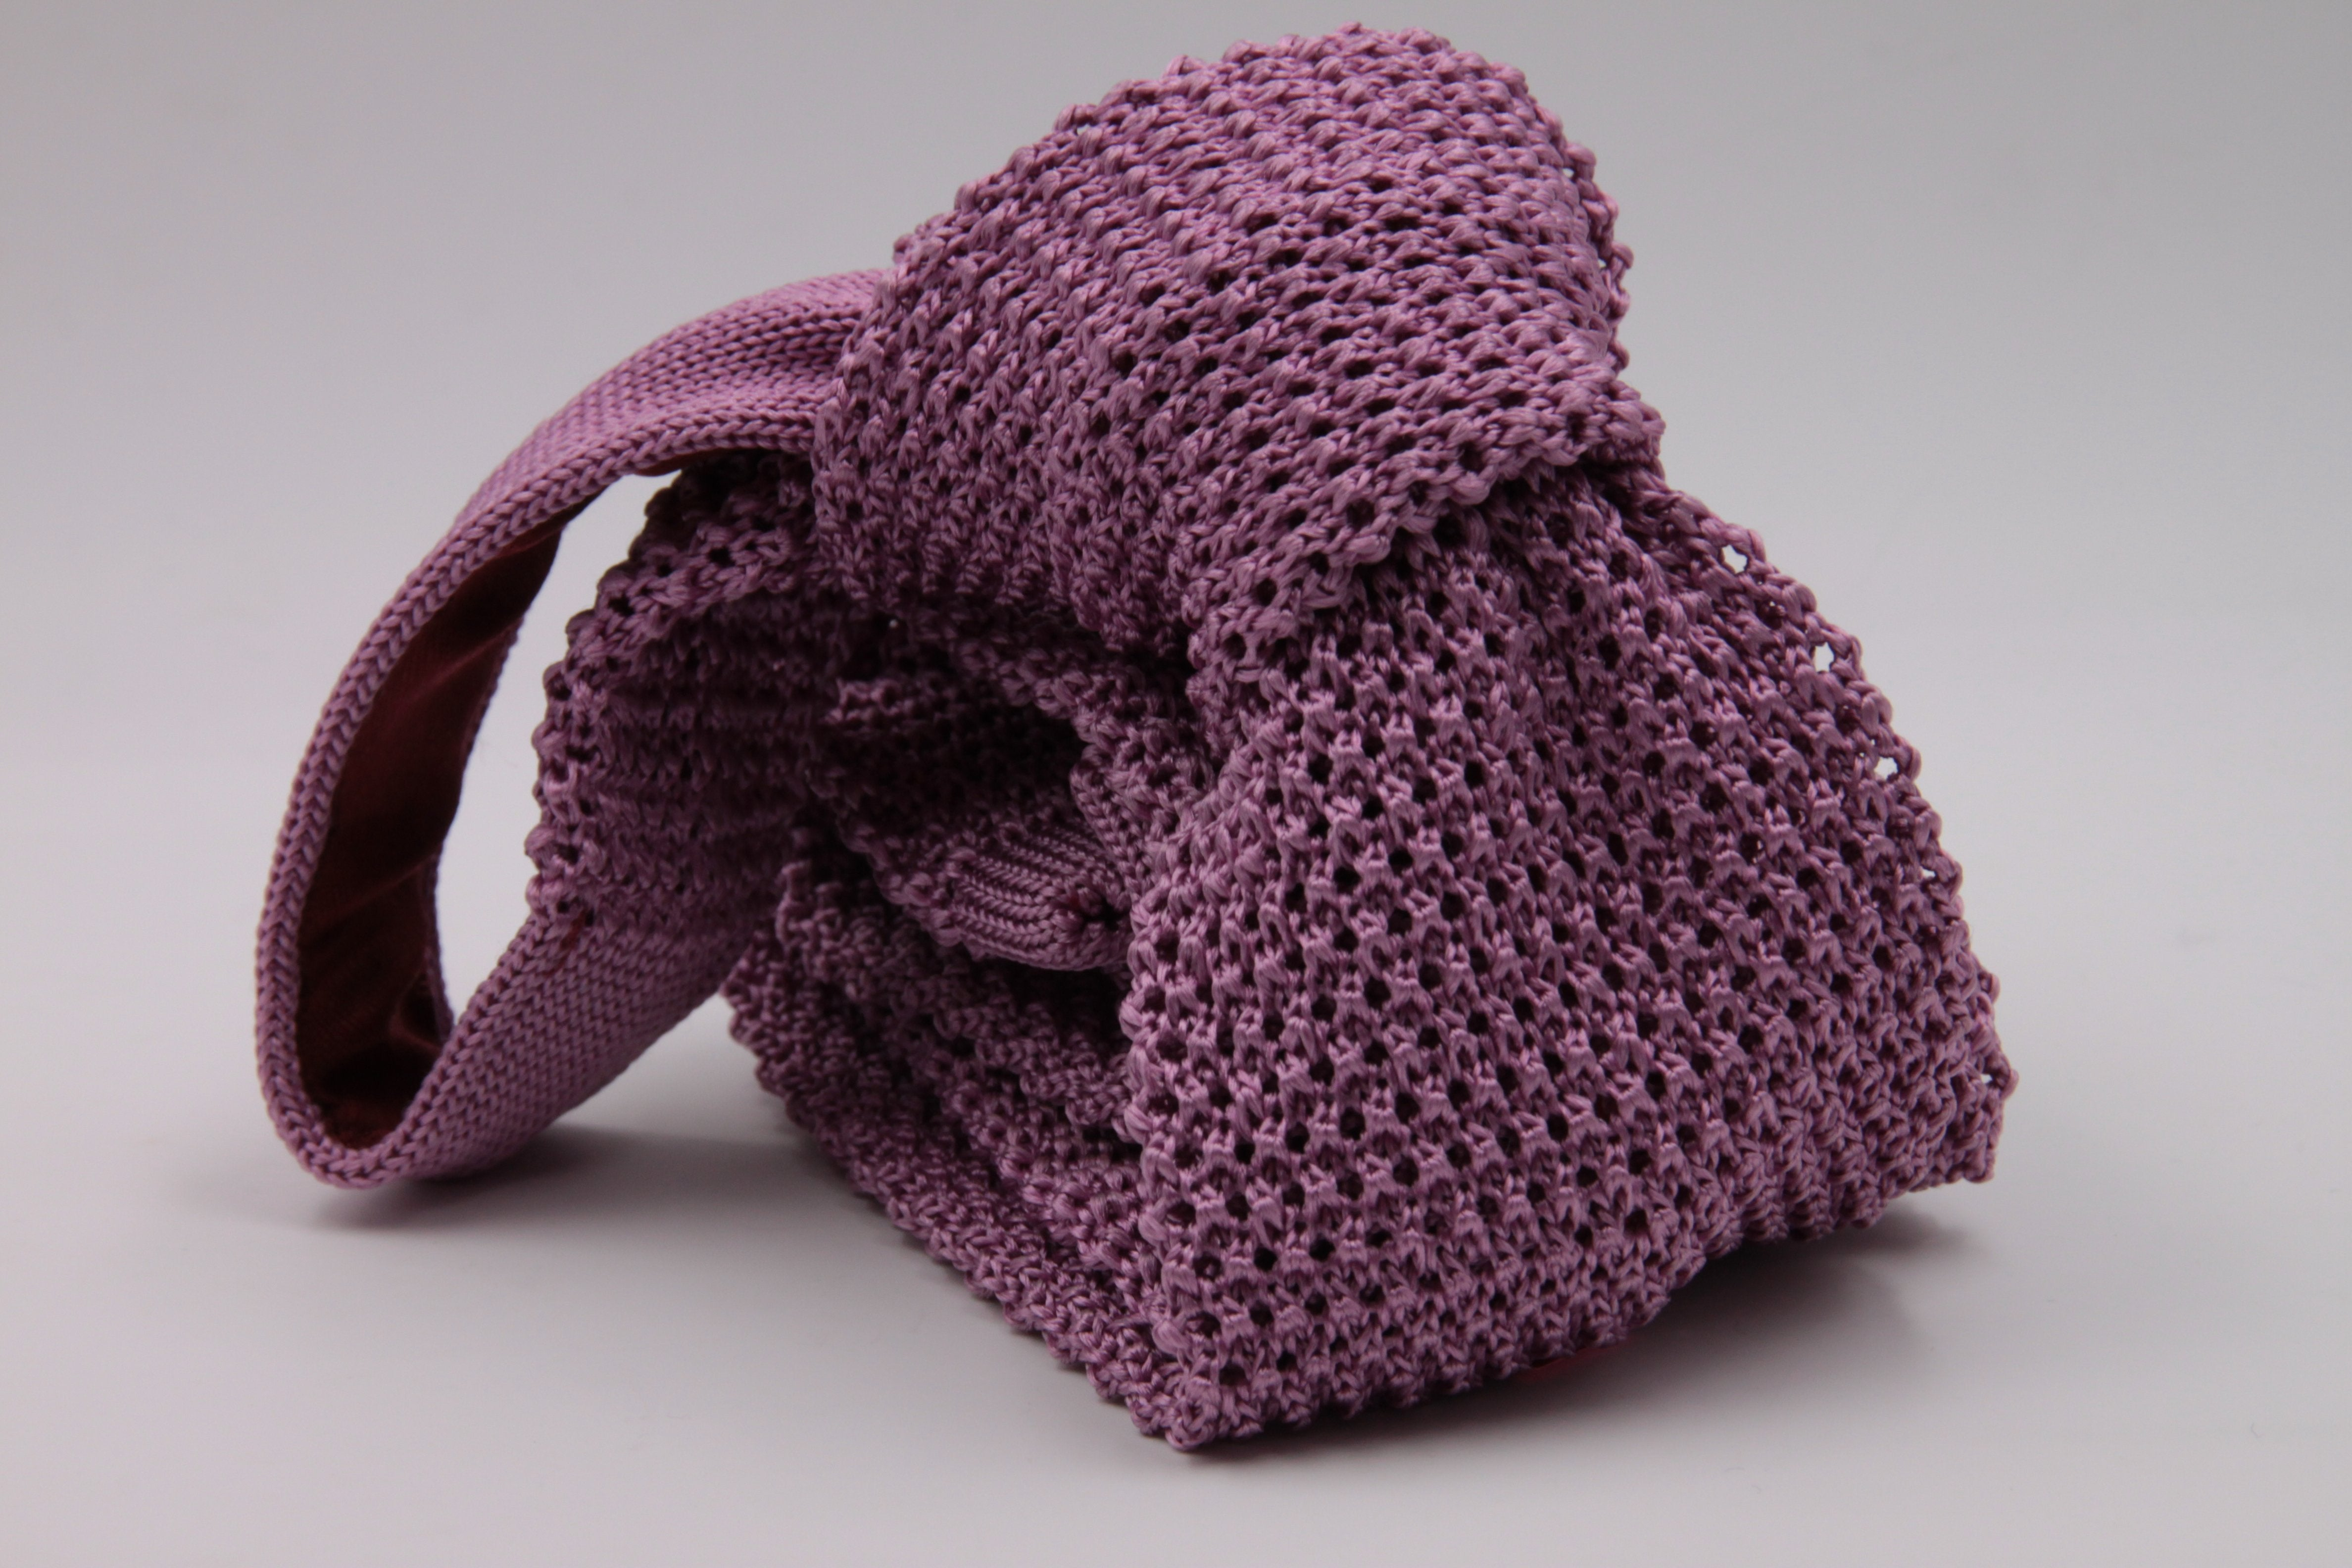 Plum knitted tie